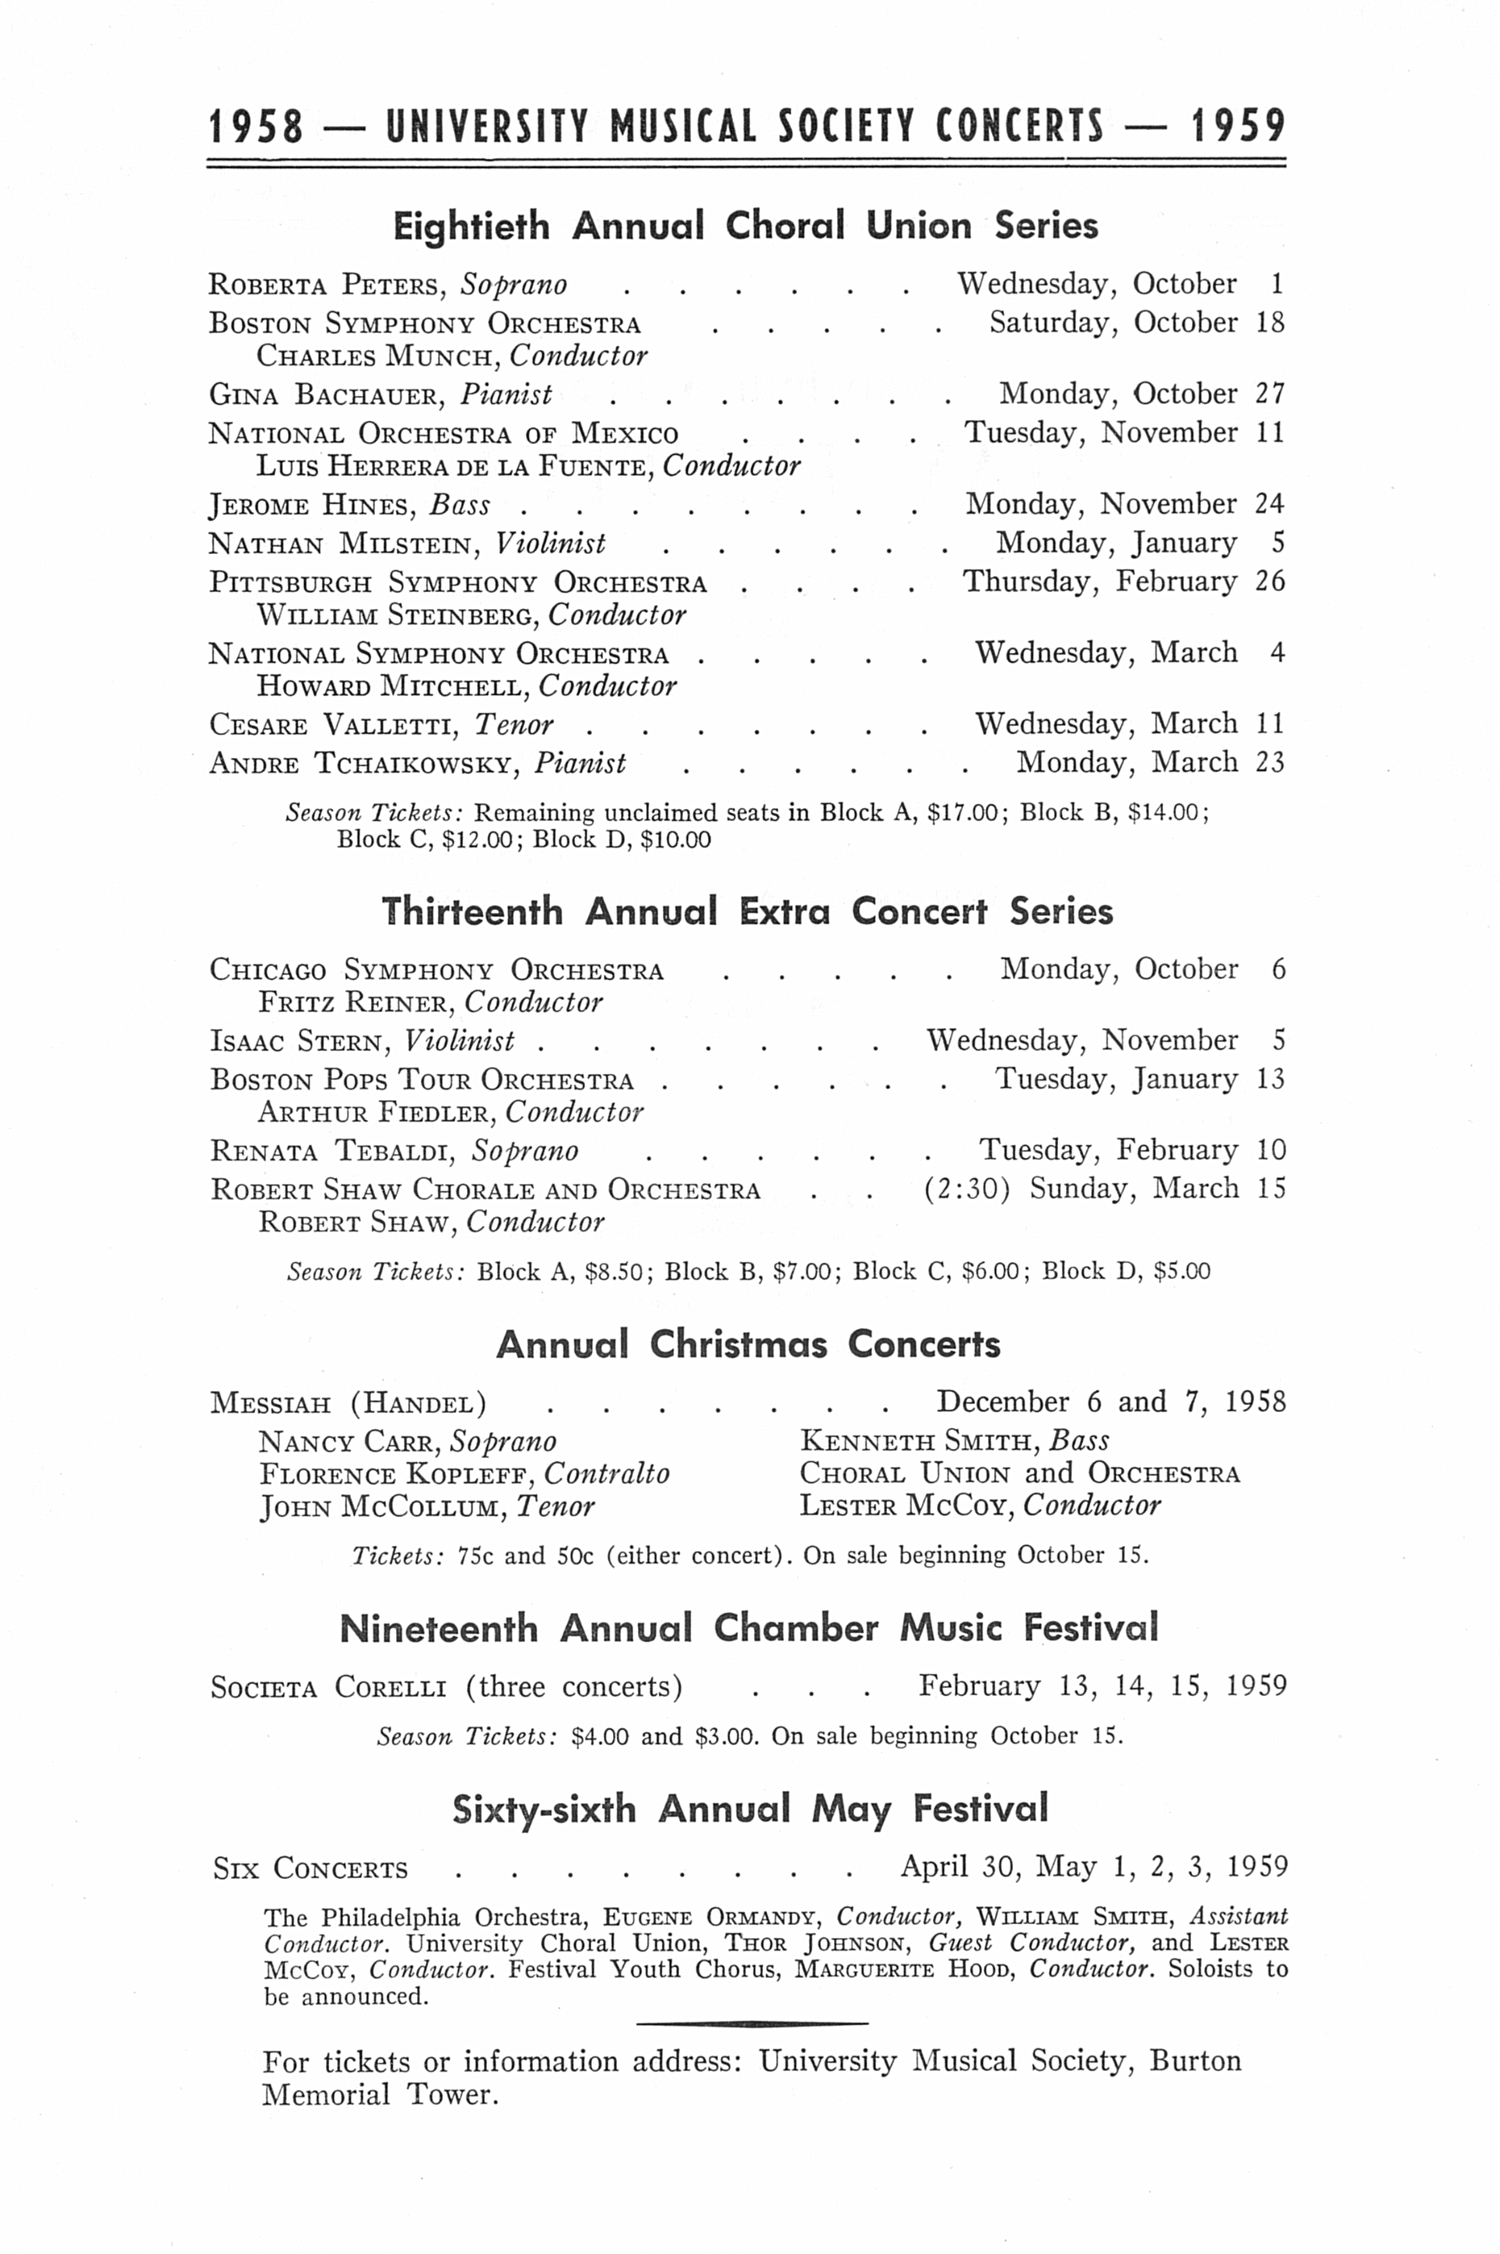 UMS Concert Program, May 1, 1958: Sixty-fifth Annual May Festival -- The Philadelphia Orchestra image